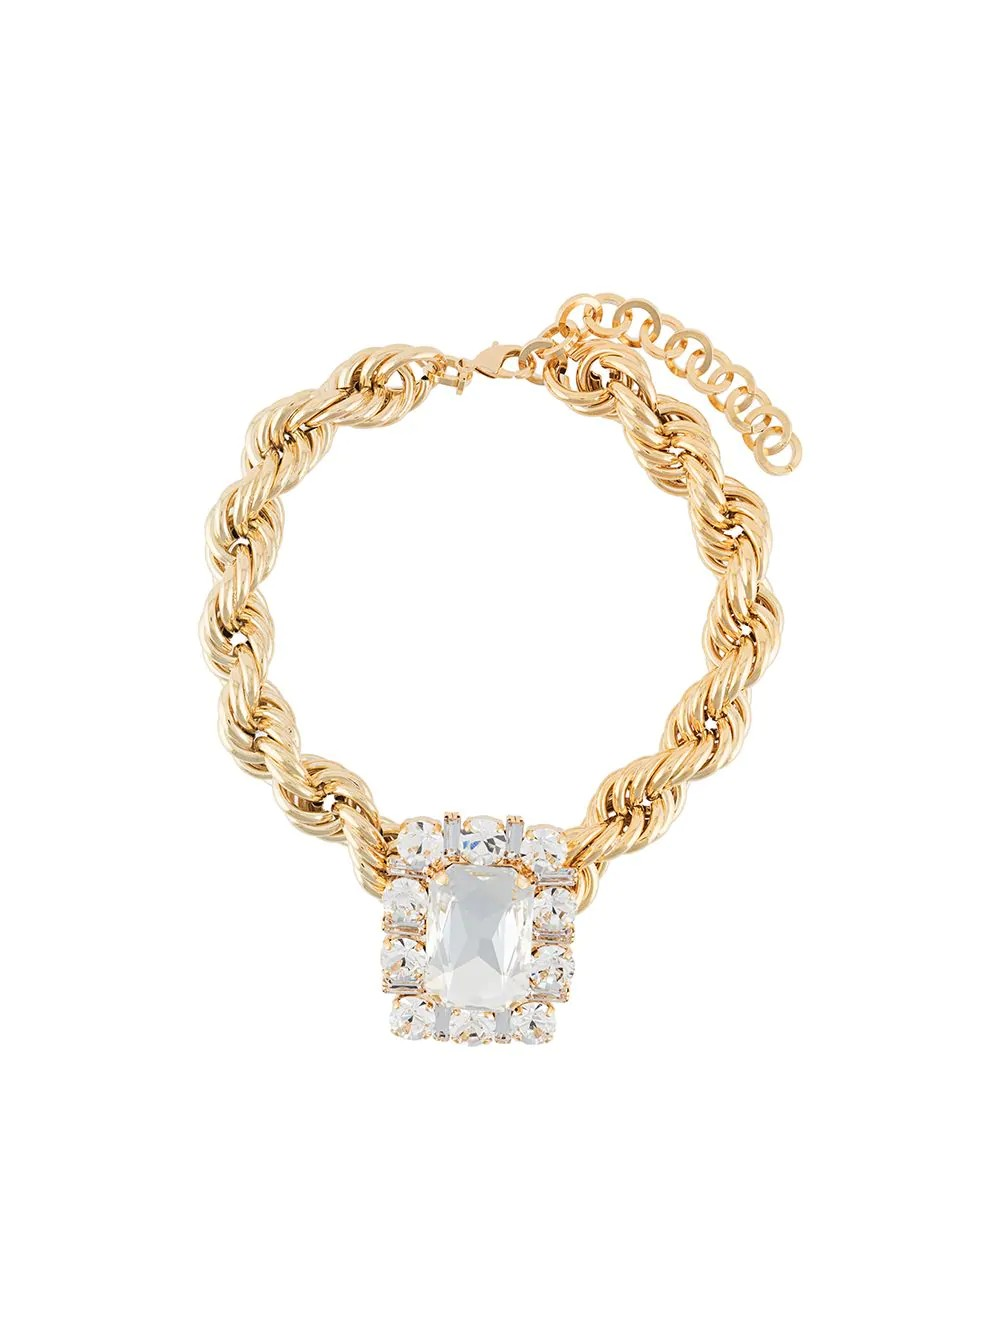 GOLD TONED CHOKER WITH CRYSTAL SQUARE